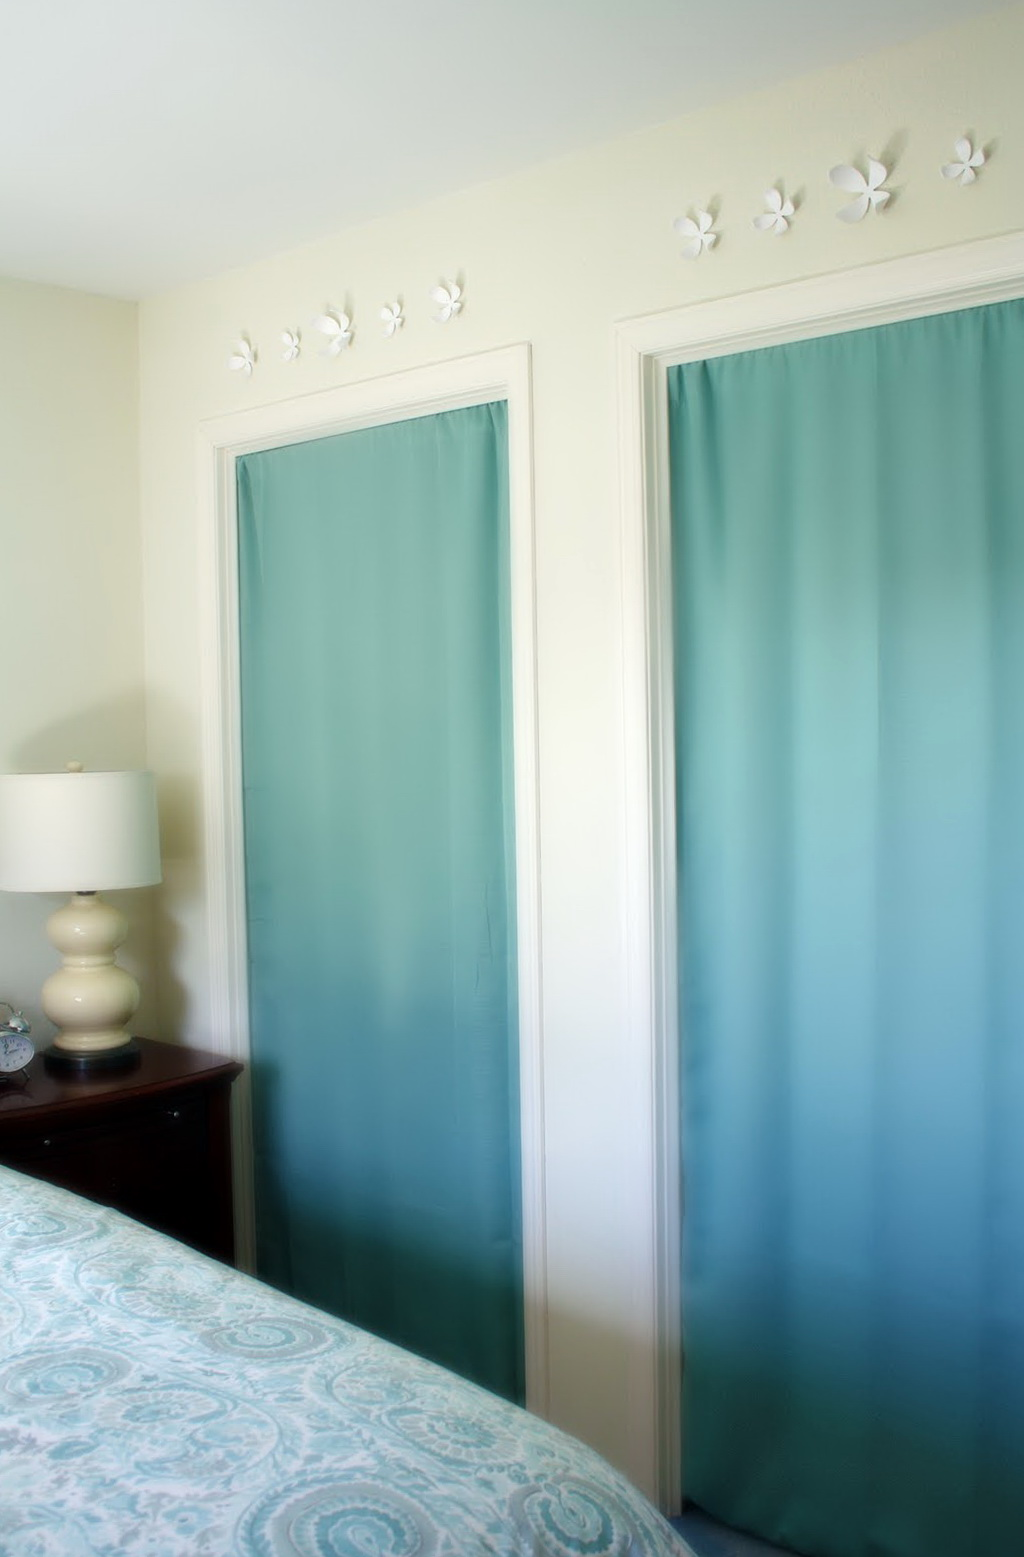 Panel Curtain Closet Door Home Design Ideas